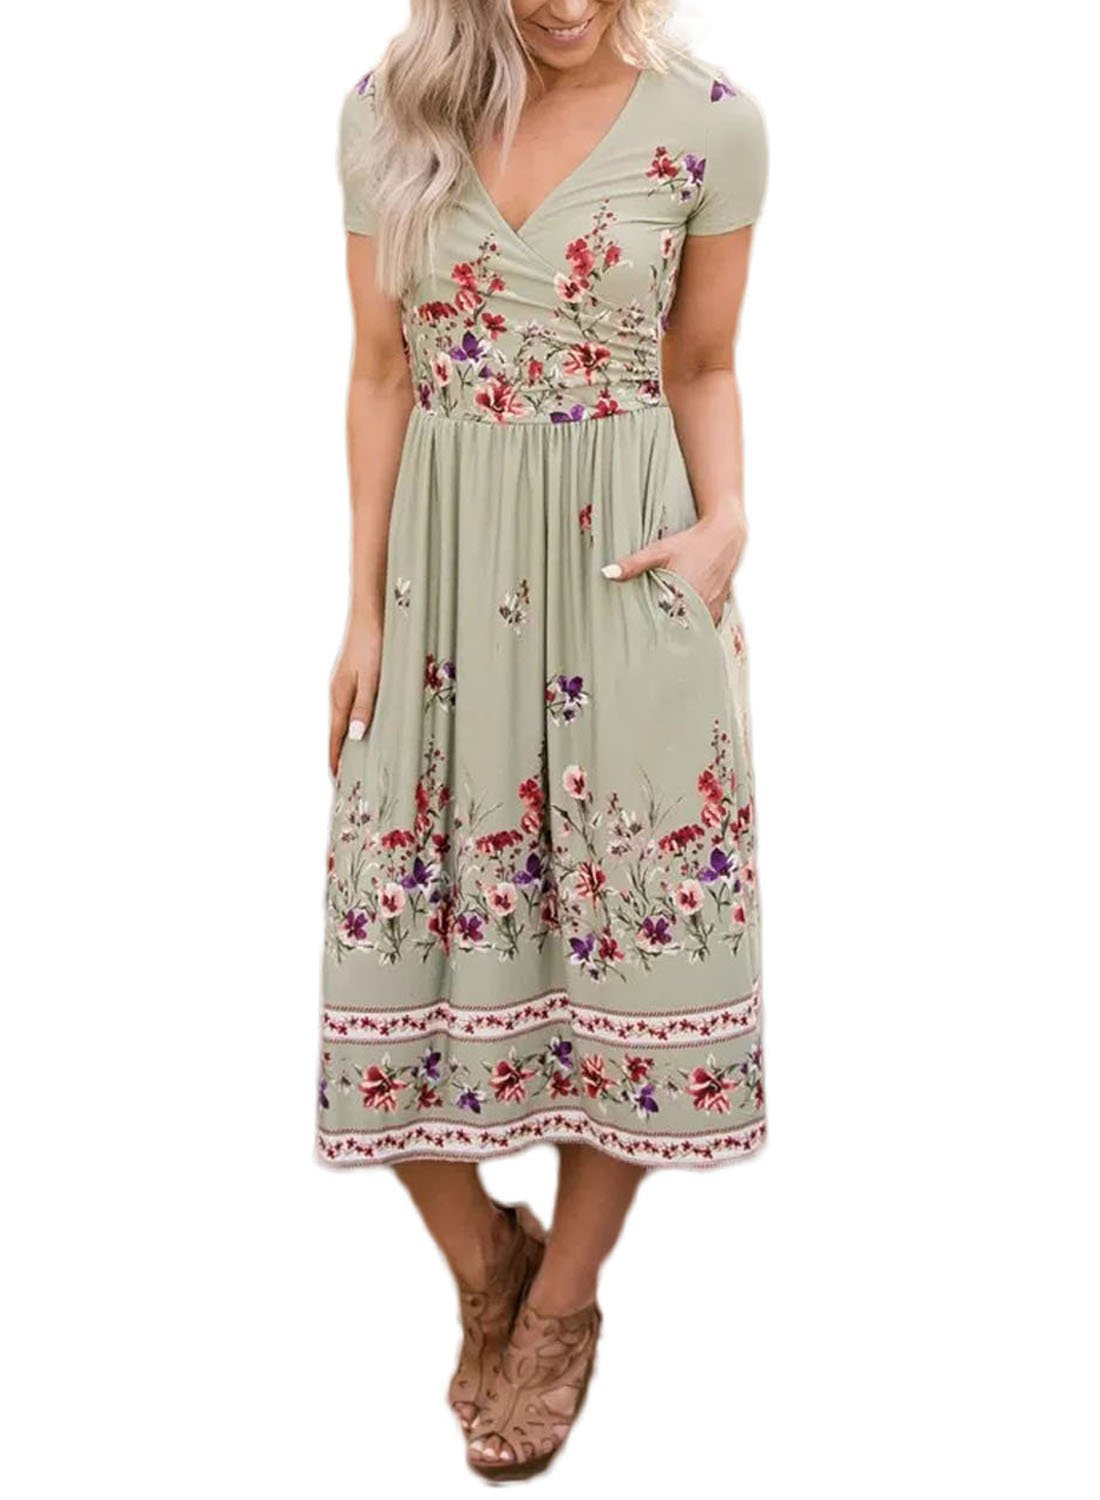 CANIKAT Women's Summer Boho Floral Print V Neck Short Sleeve Cotton Swing Midi Dress Sundresses M Green